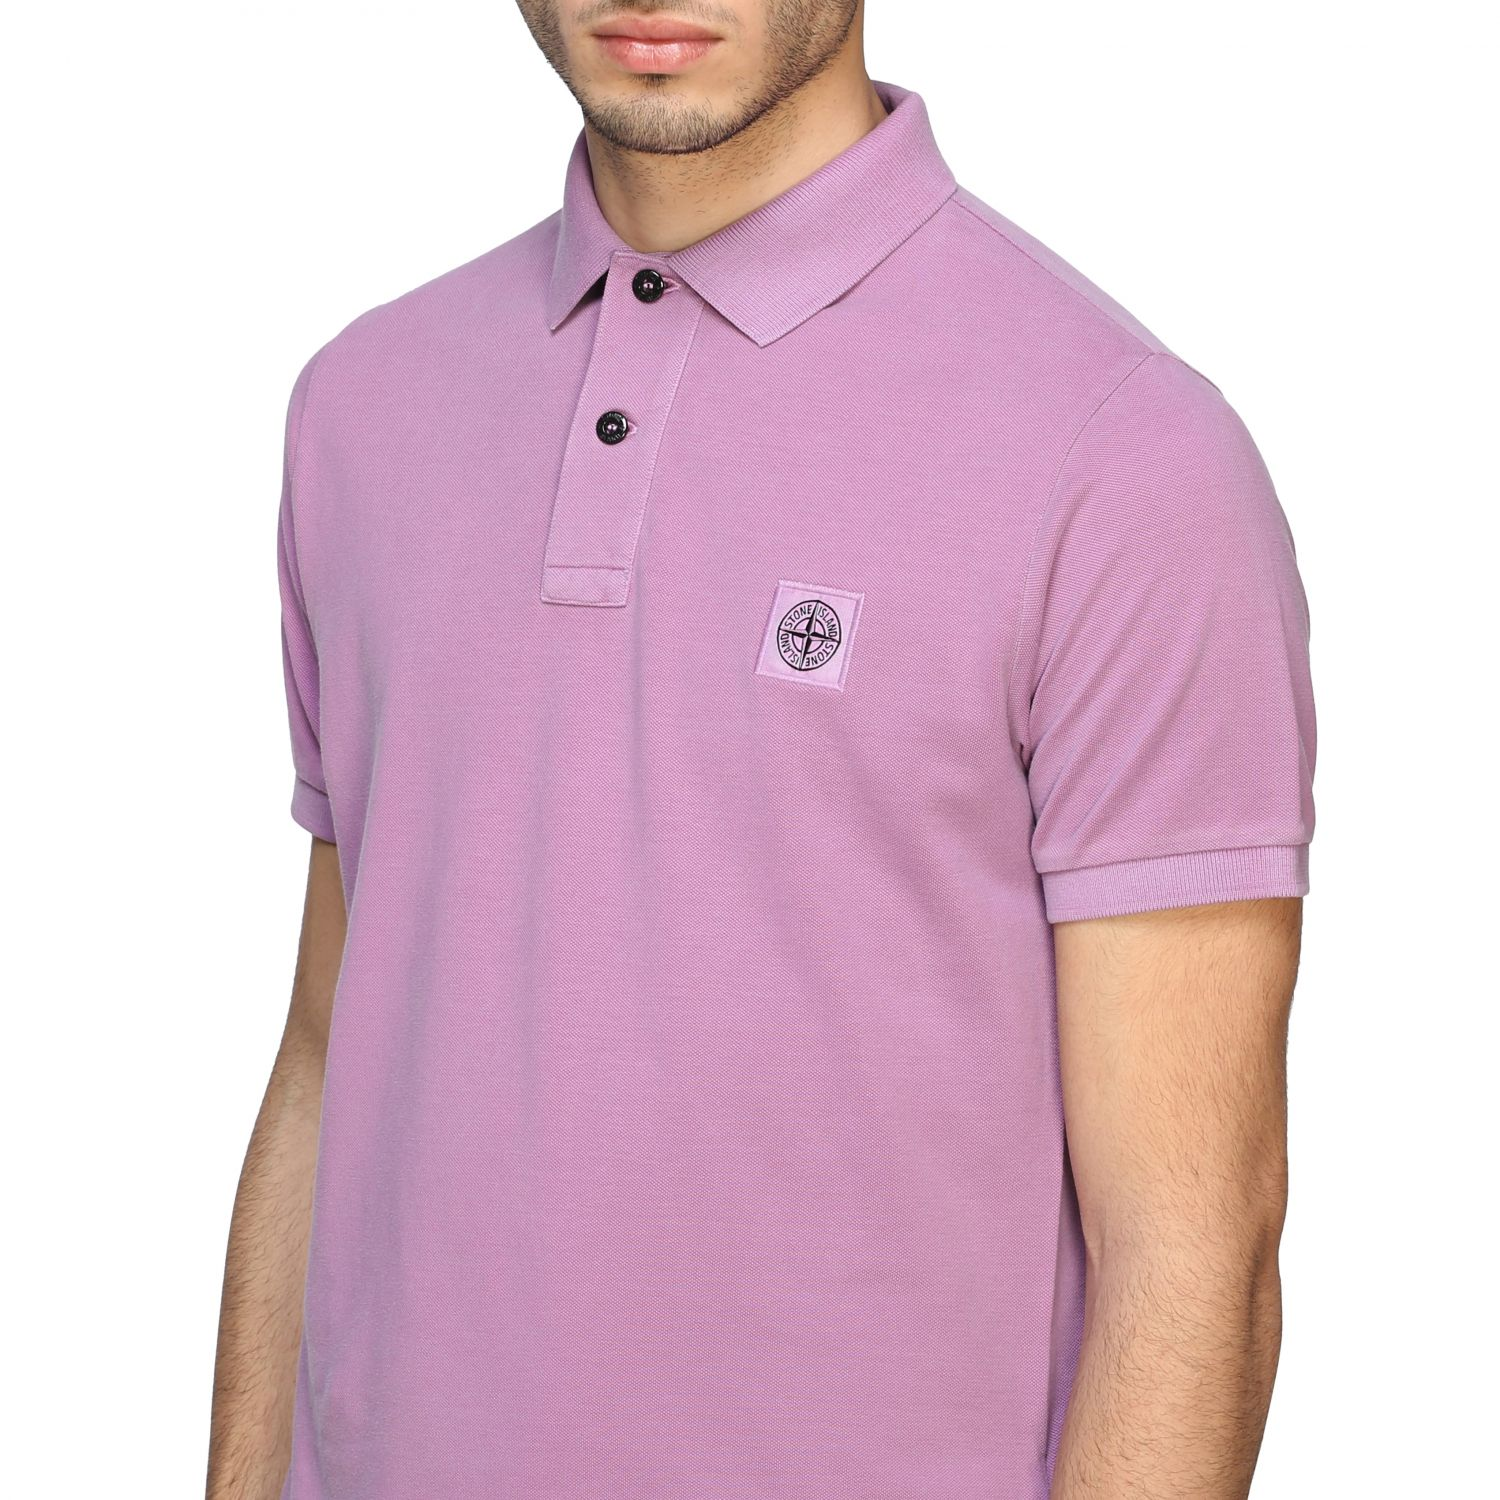 Stone Island short-sleeved polo shirt pink 5